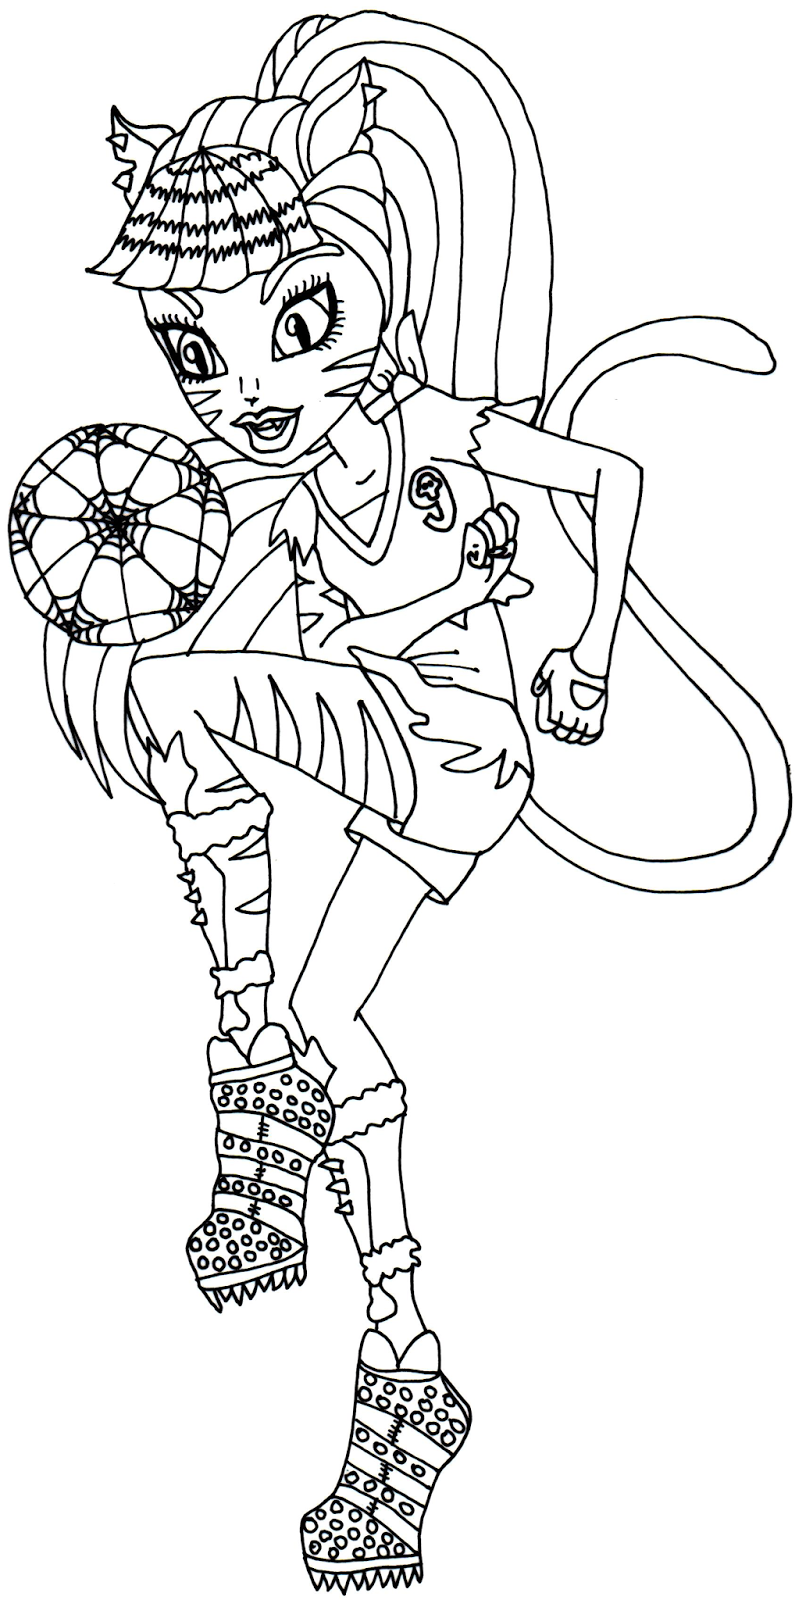 monster high coloring page - free printable monster high coloring pages march 2014